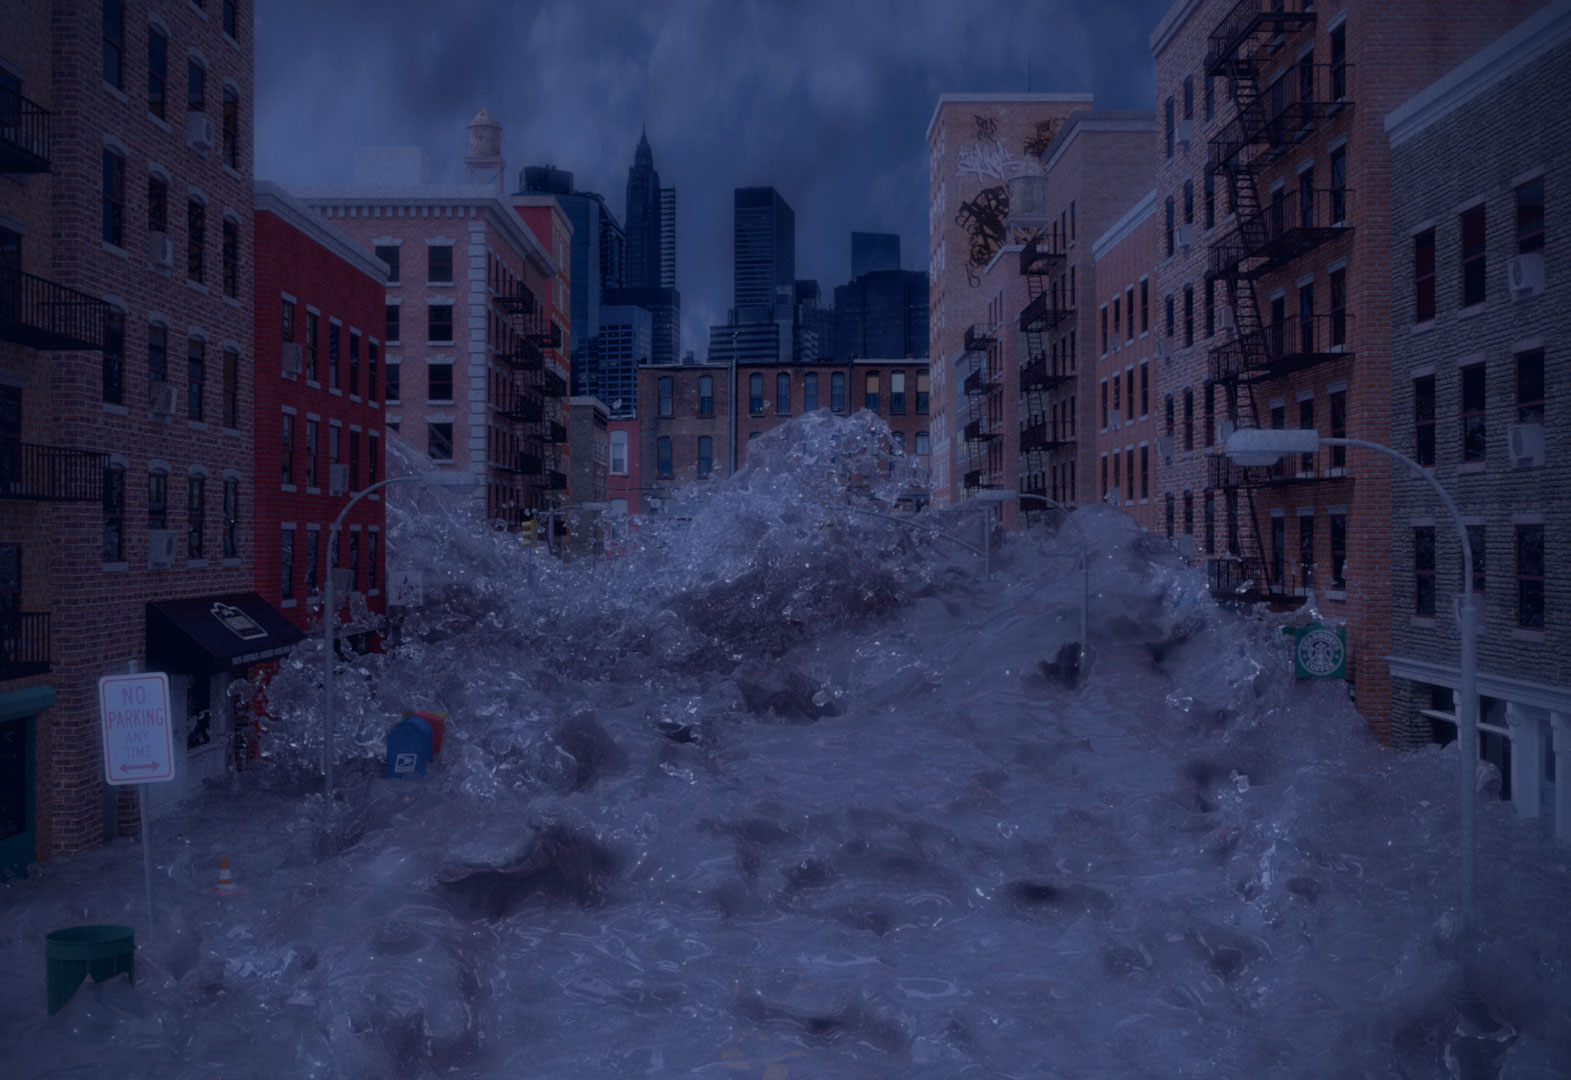 Tidal Wave Flooding New York Streets